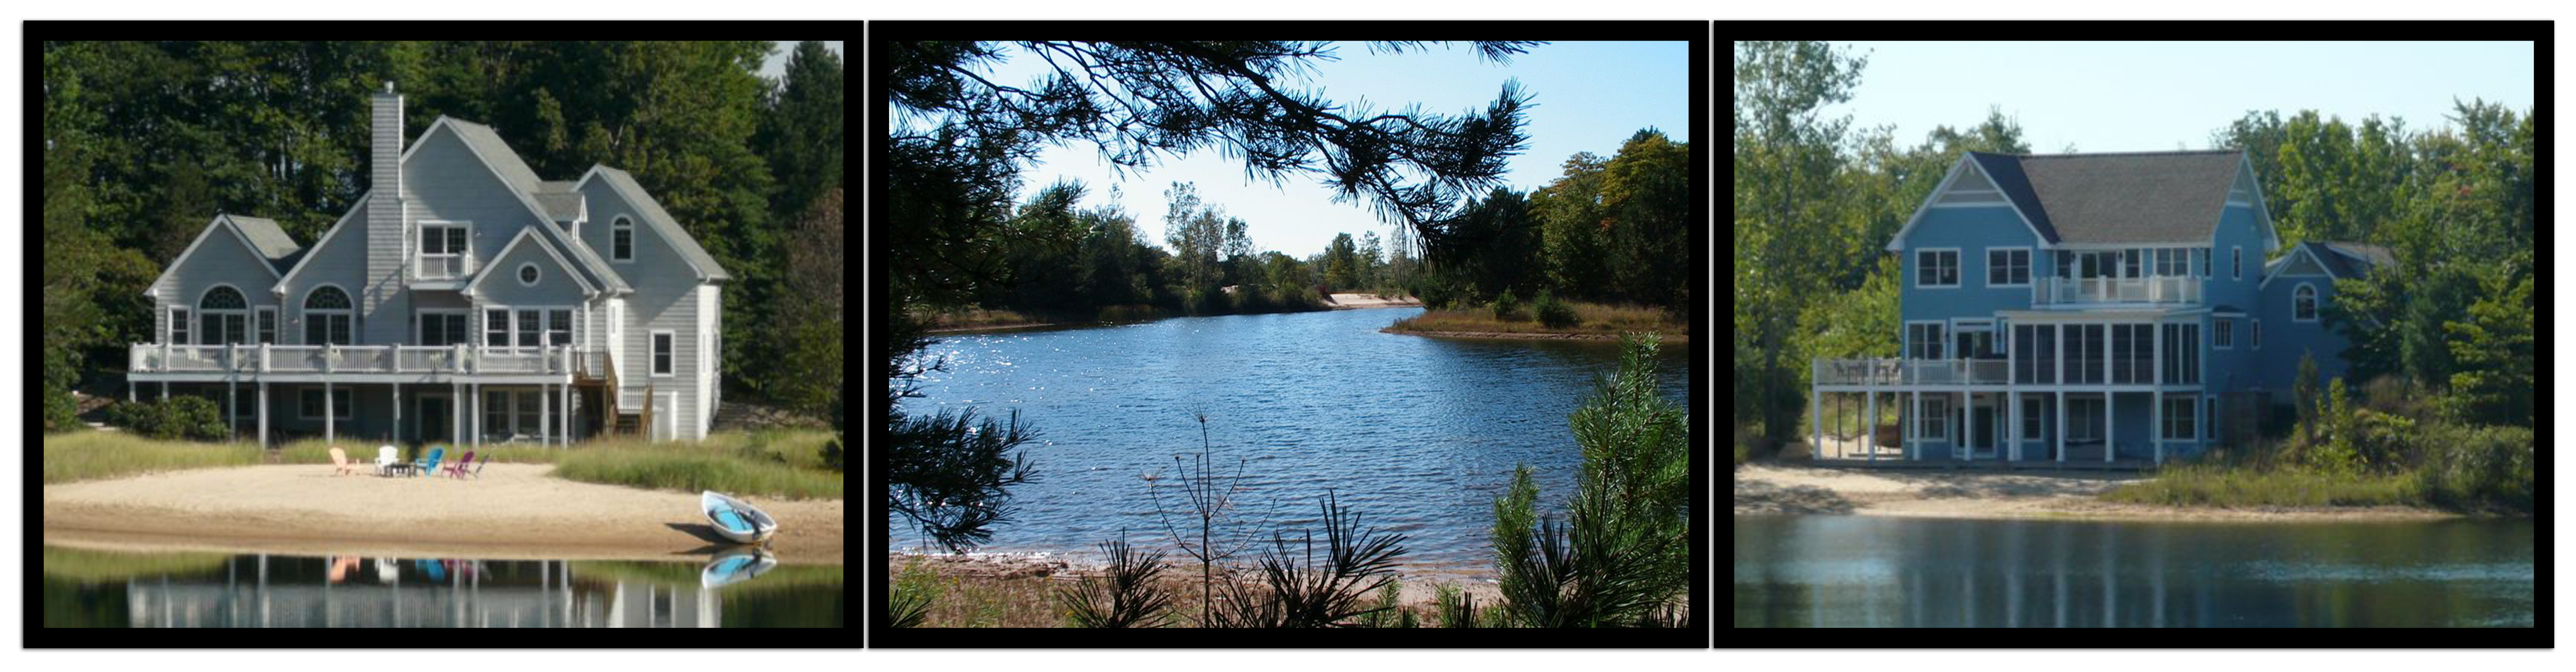 Lakefront homes & sites near South Haven Michigan